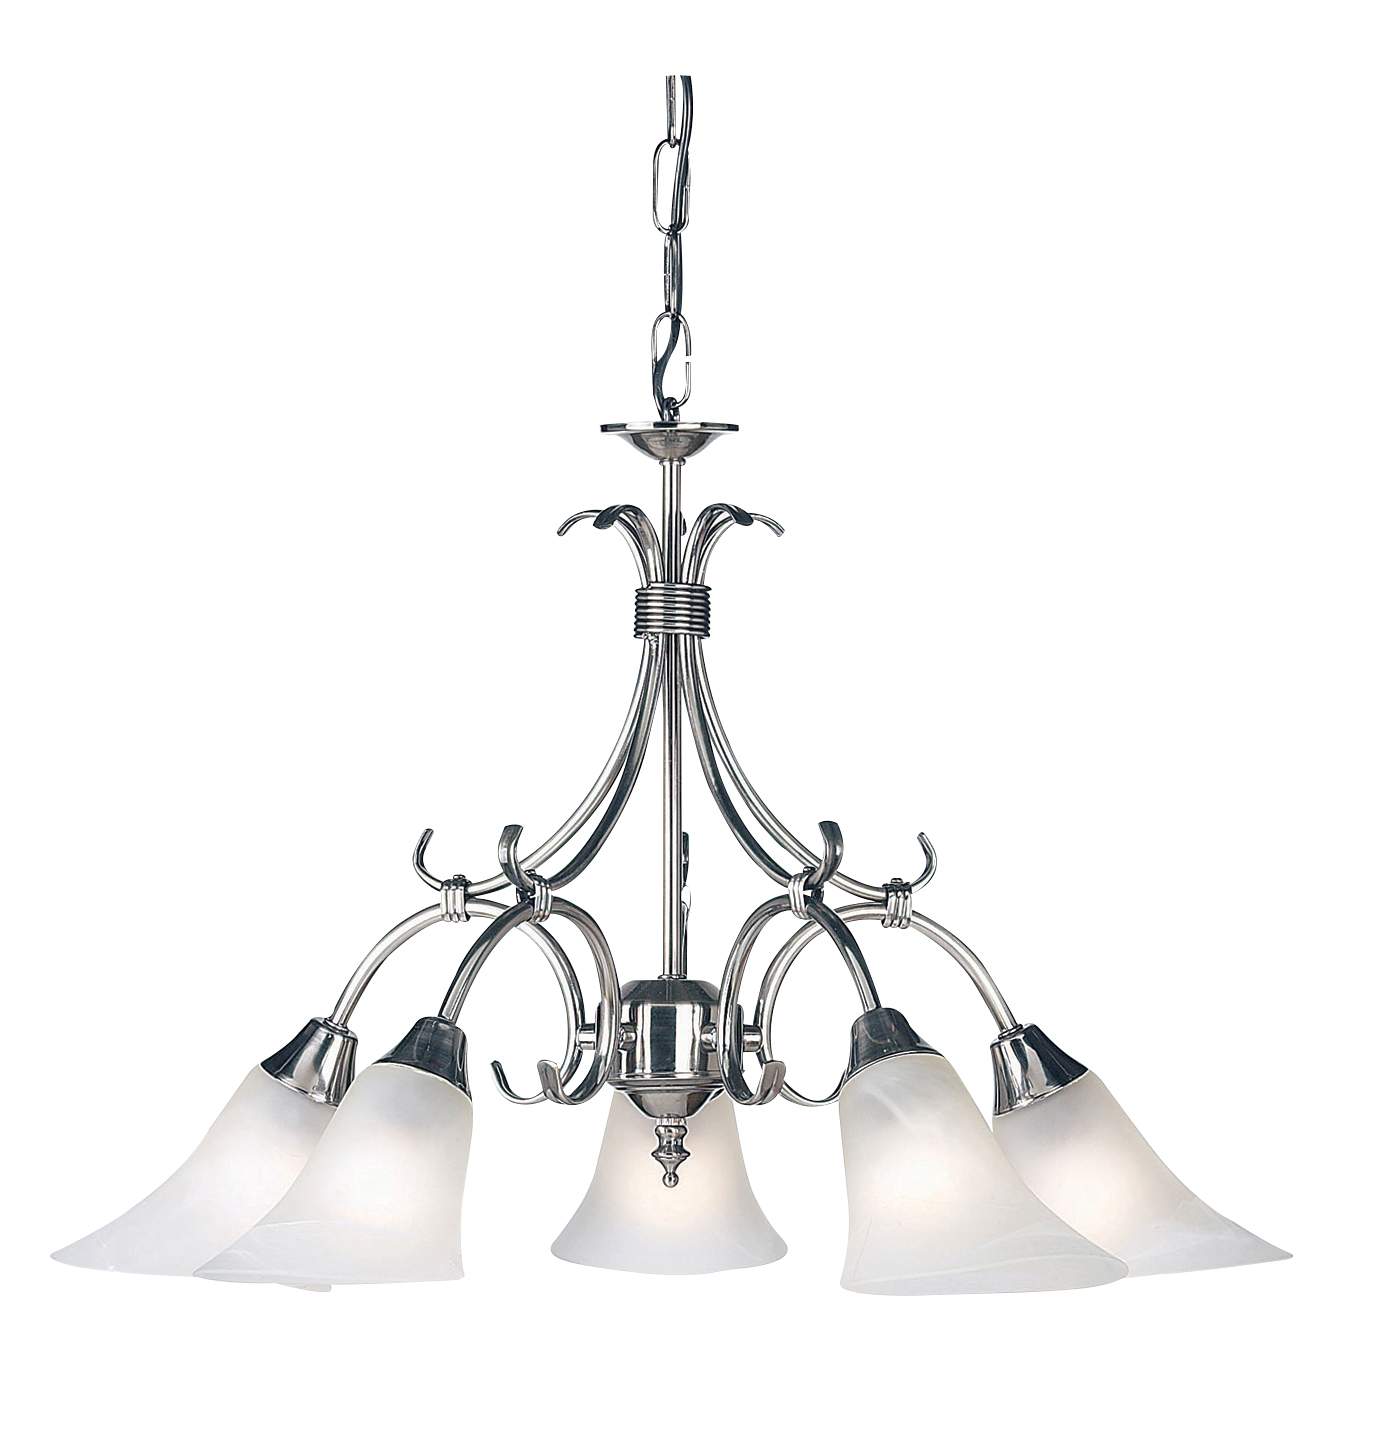 Endon Hardwick pendant 5x 40W Antique silver effect plate & frosted glass